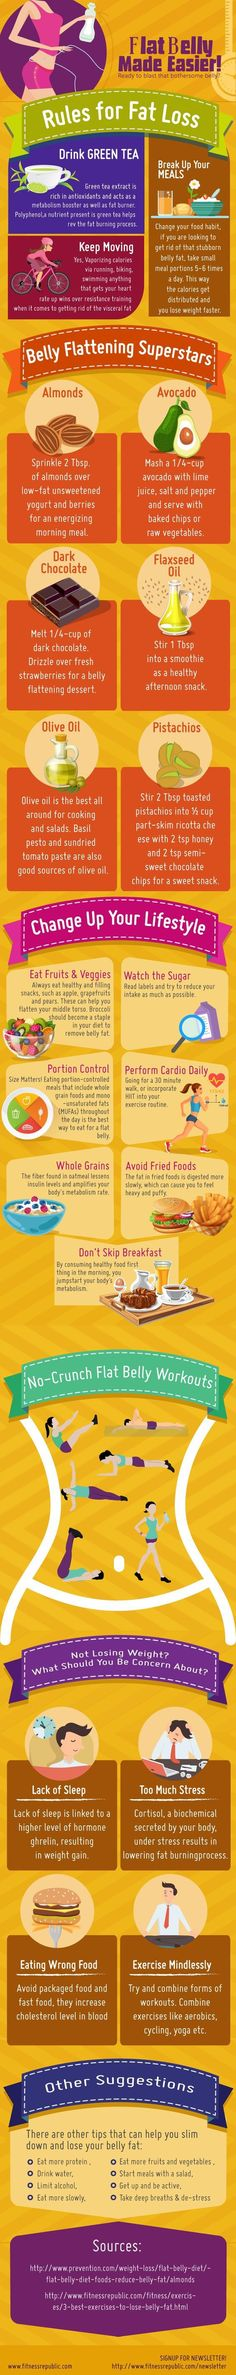 4rules for fat loss